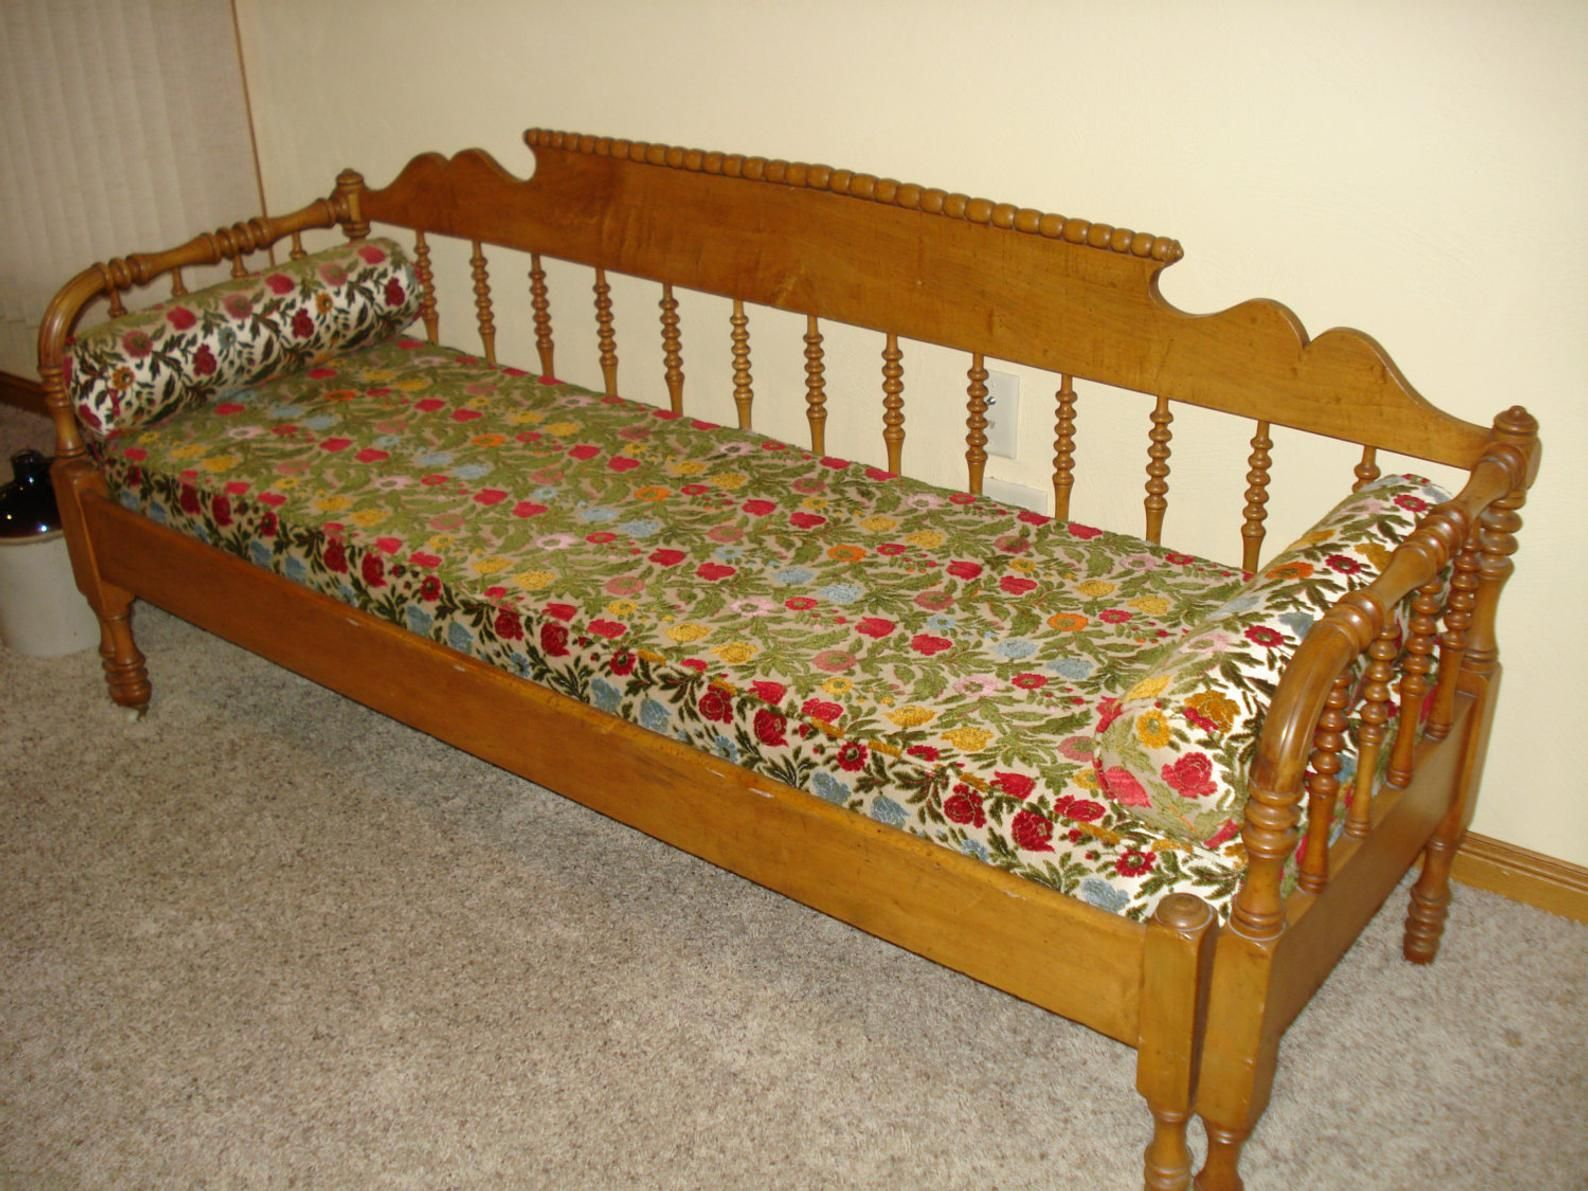 Vintage Antique Daybed Antique Spindle Type Pull Out Galena Daybed Circa 1880 S Jenny Lind Style Victorian Primitive Antique Daybed Antique Daybed Jenny Lind Bed Styling